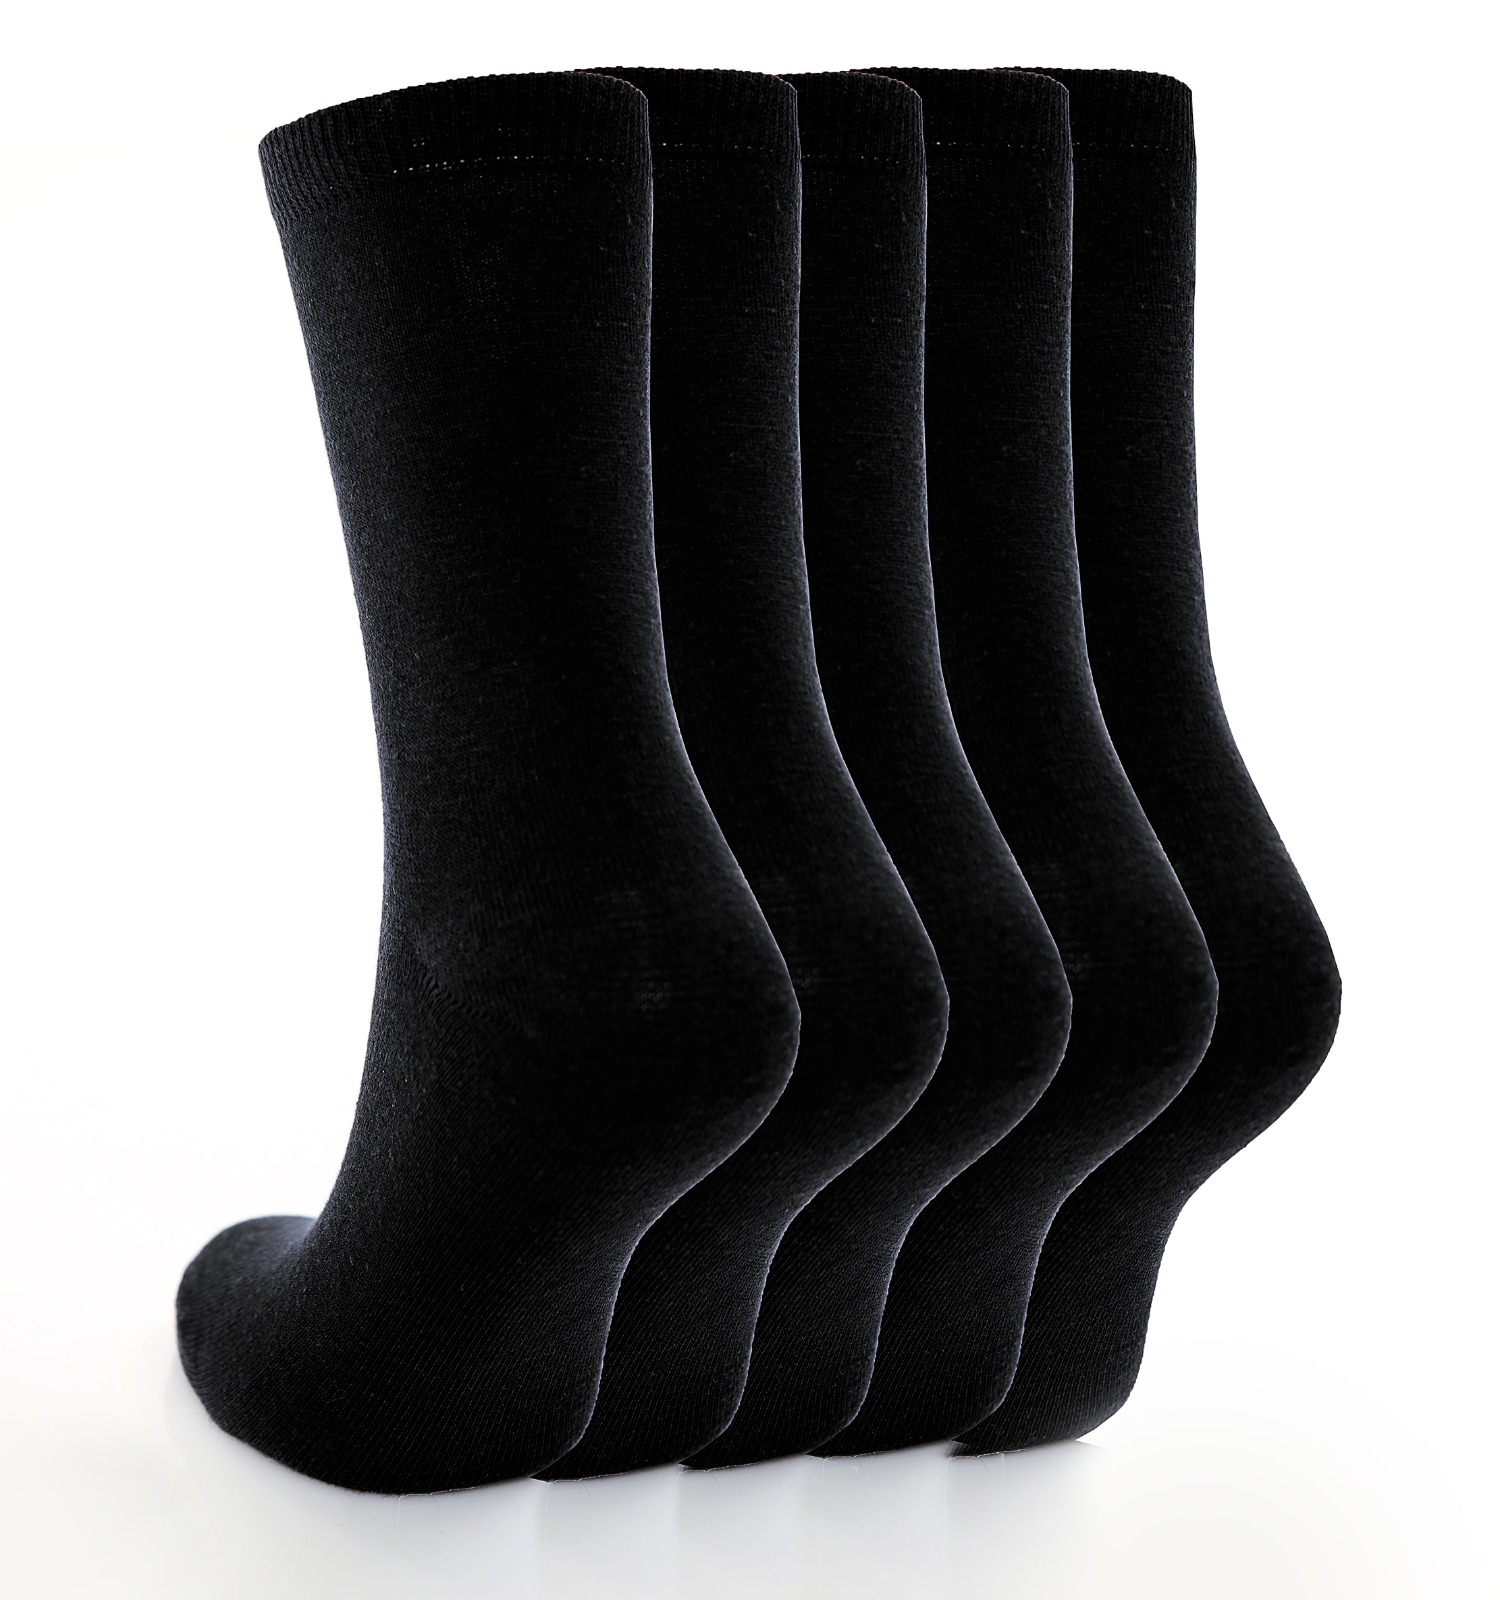 Children's 5pk Plain Black Cotton Rich Socks.